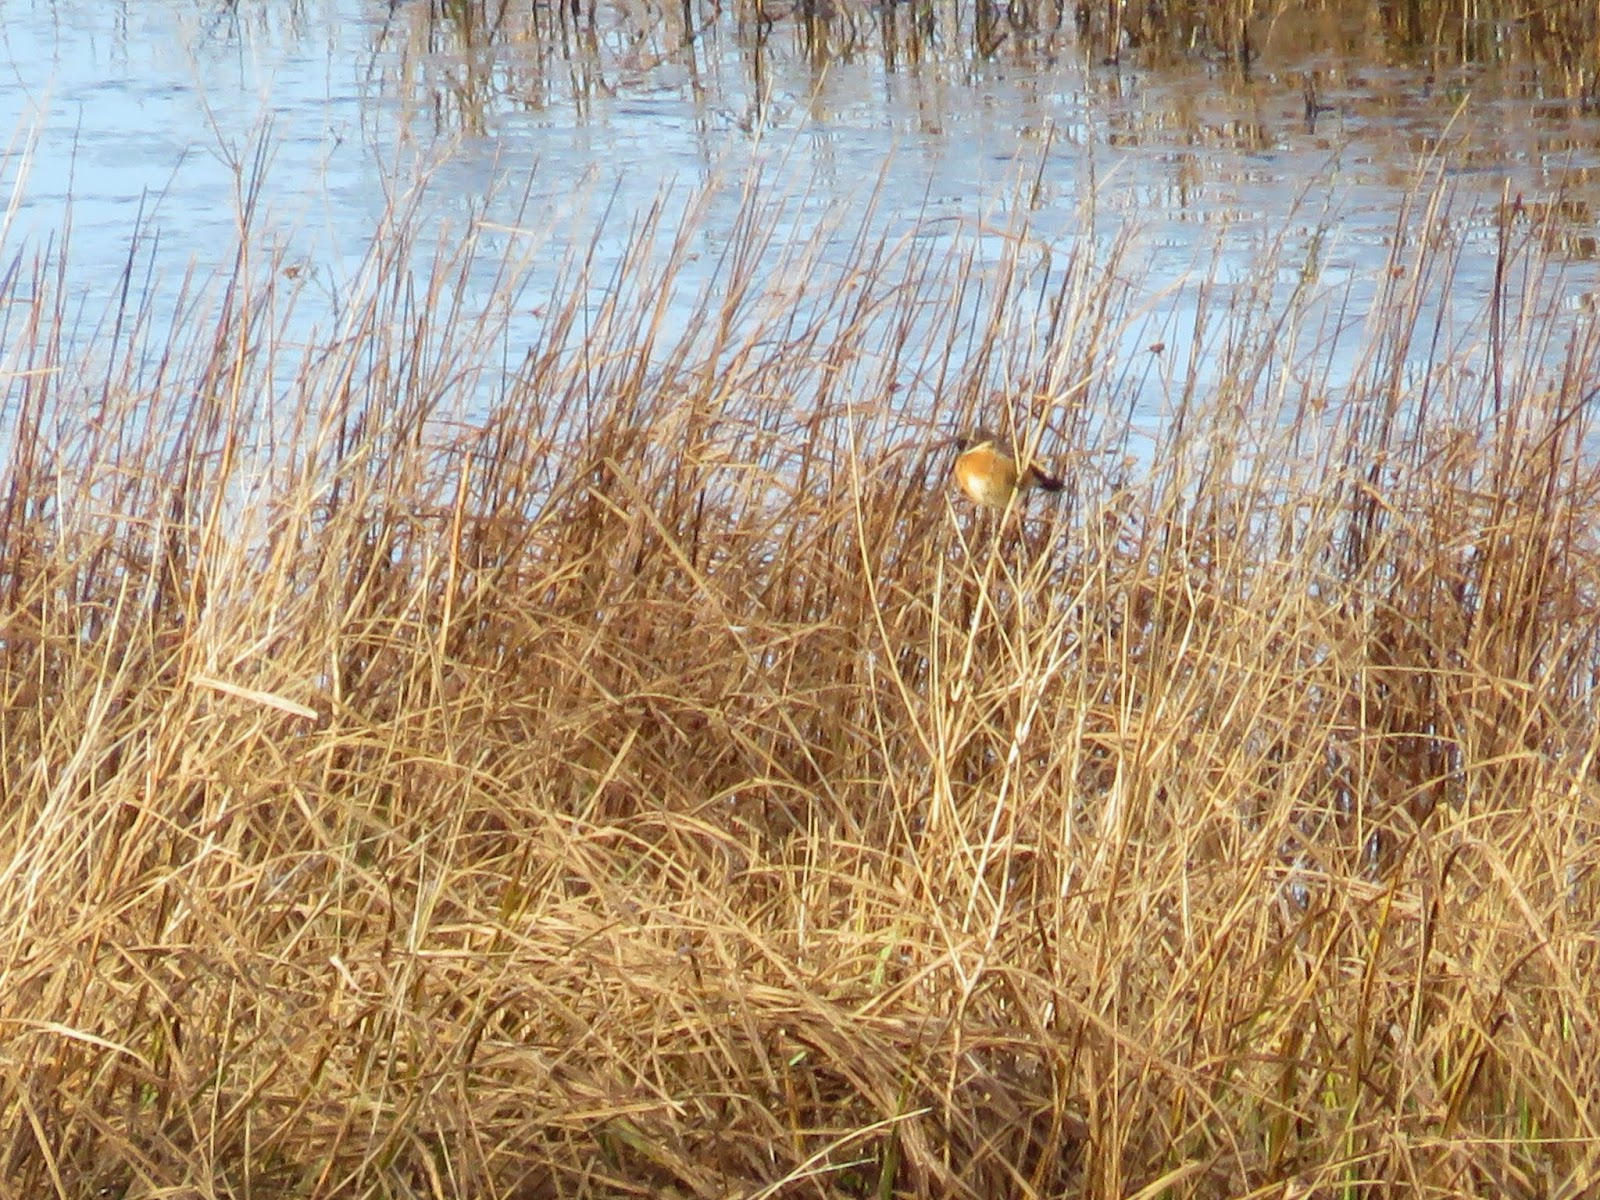 WWT London Wetland Centre: Stonechat